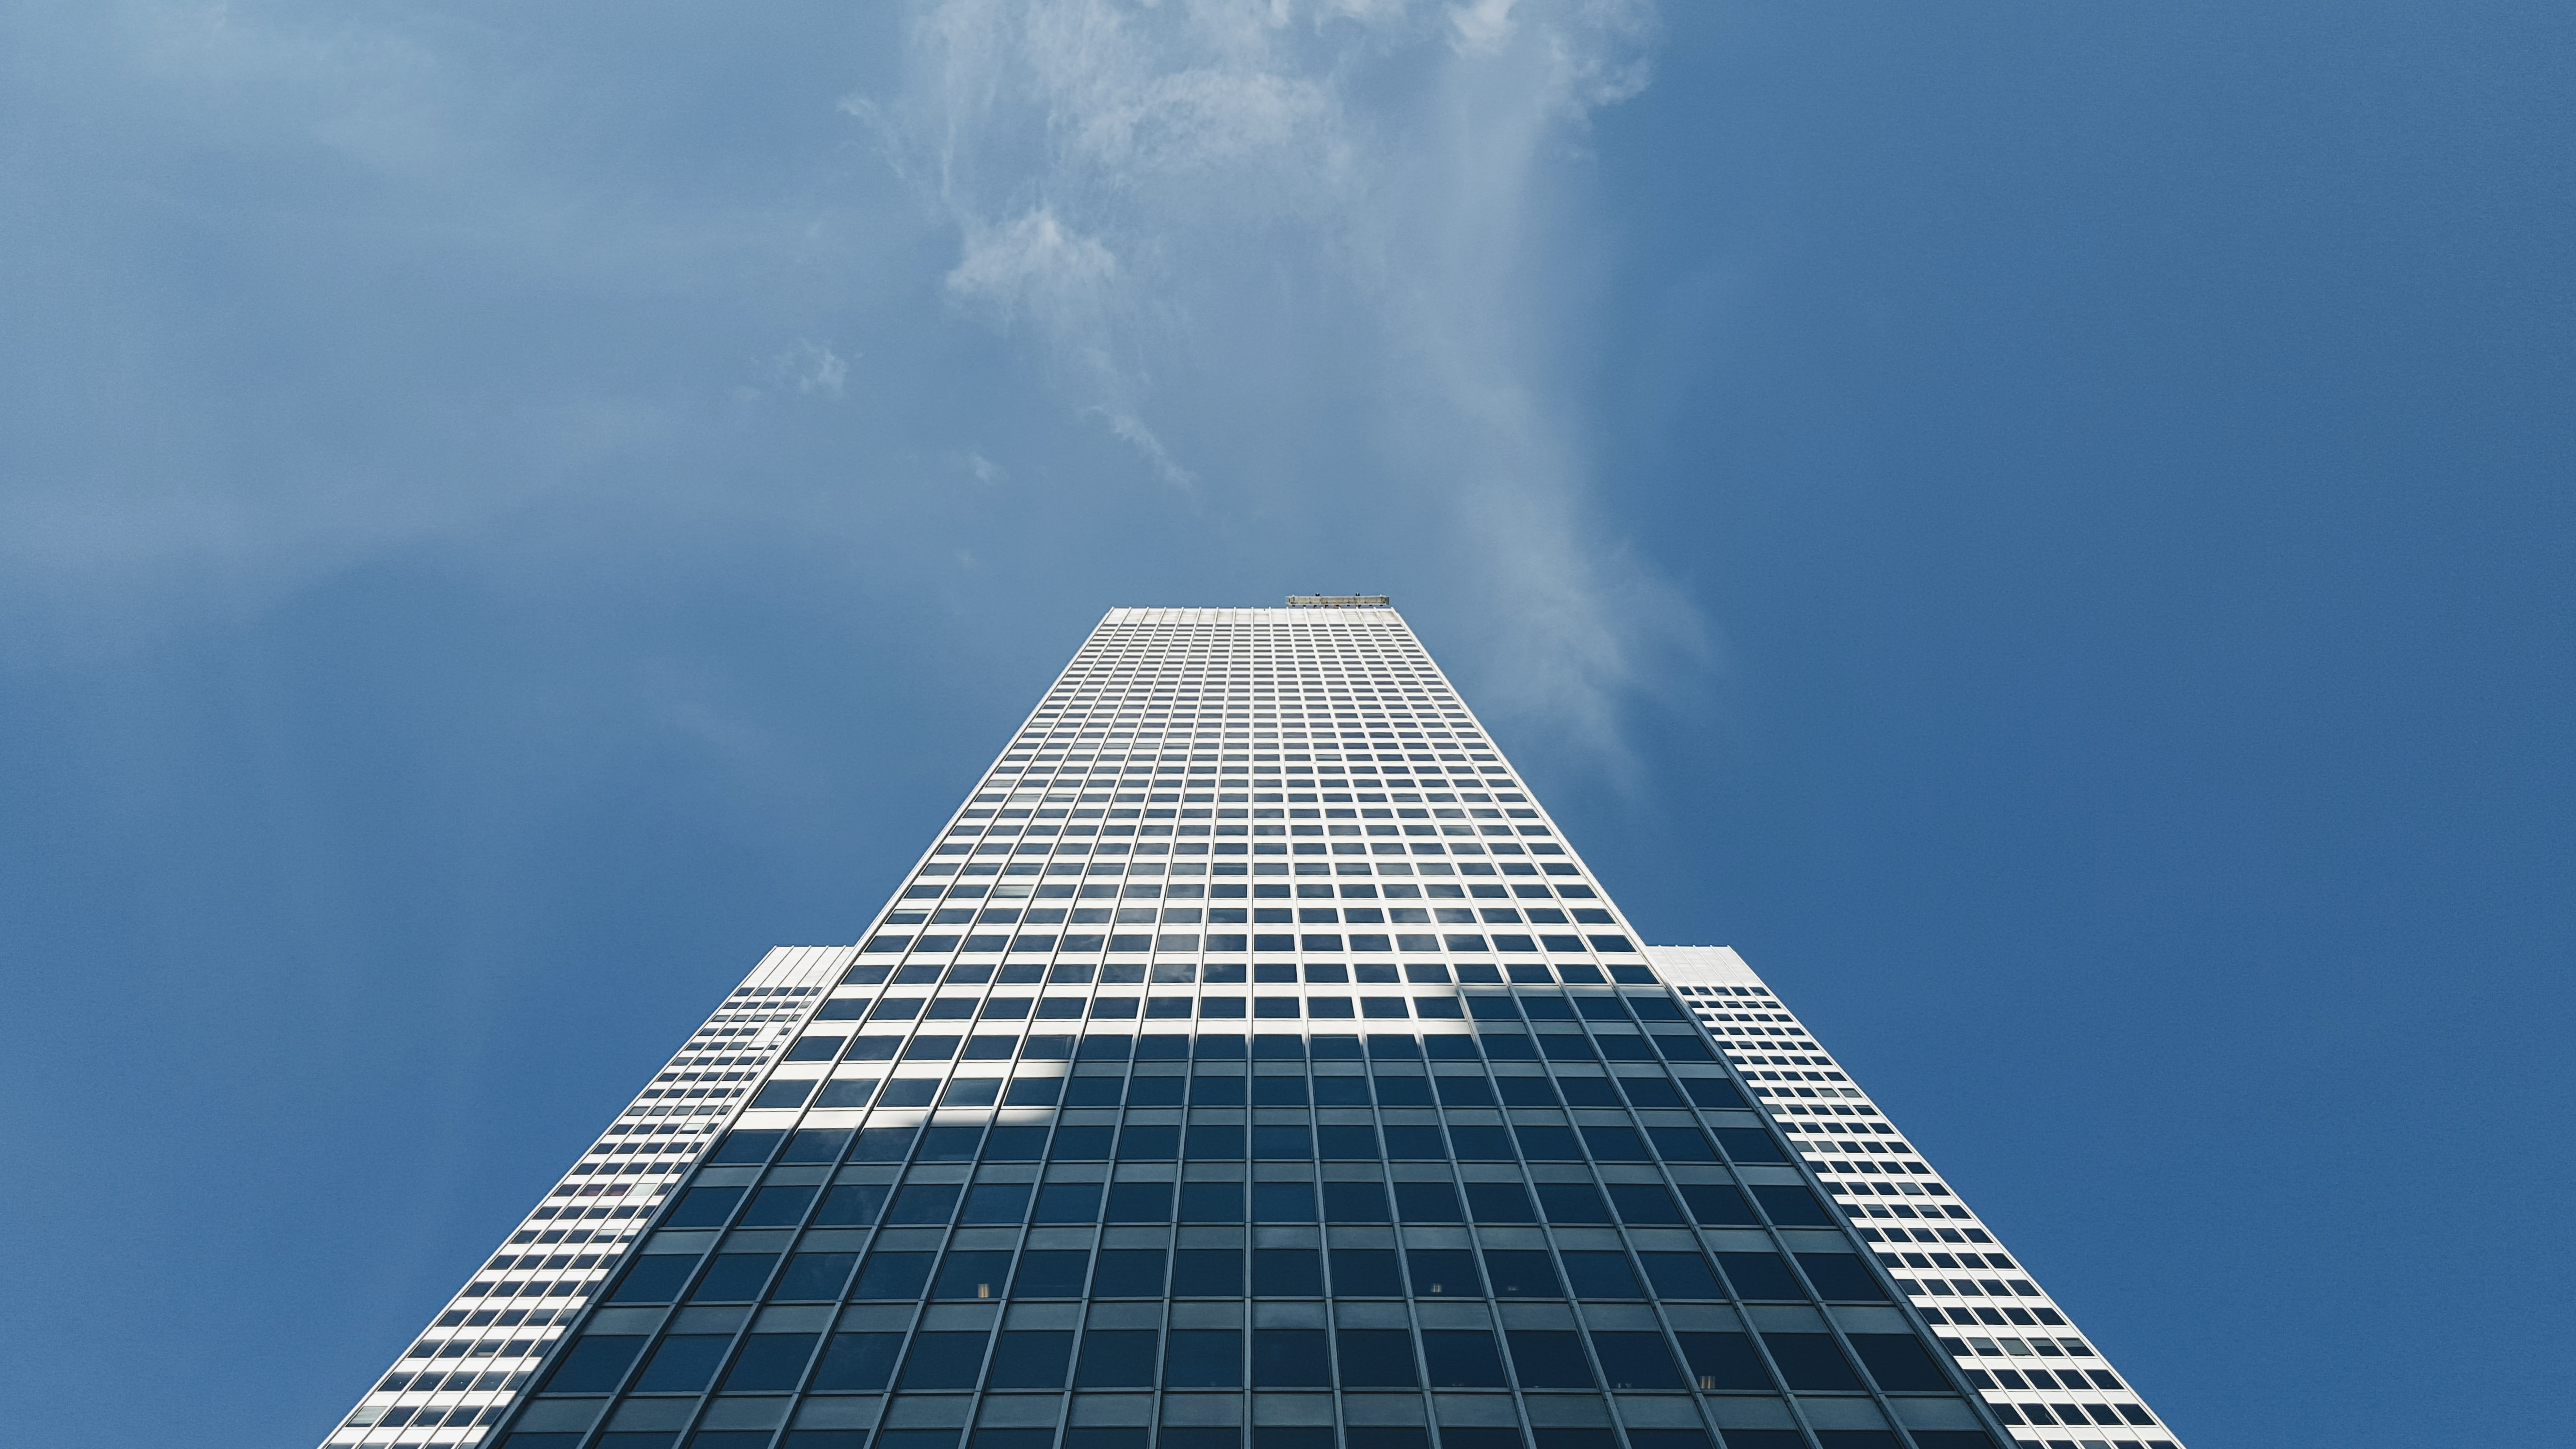 The white exterior of a tall skyscraper under a blue sky